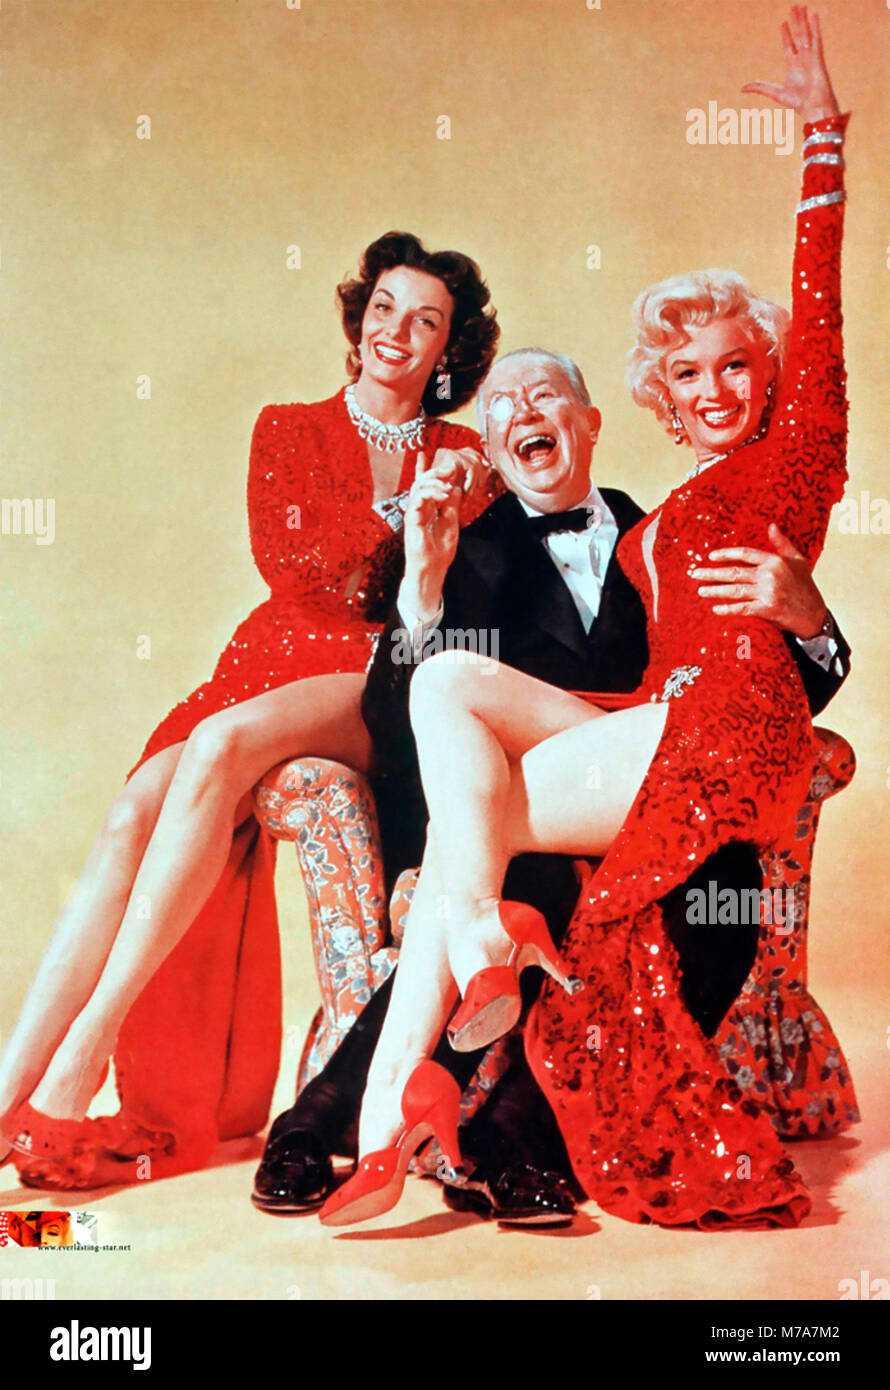 GENTLEMEN PREFER BLONDES 1953 20th Century Fox film with from left: Jane Russell, Charles Coburn, Marilyn Monroe - Stock Image